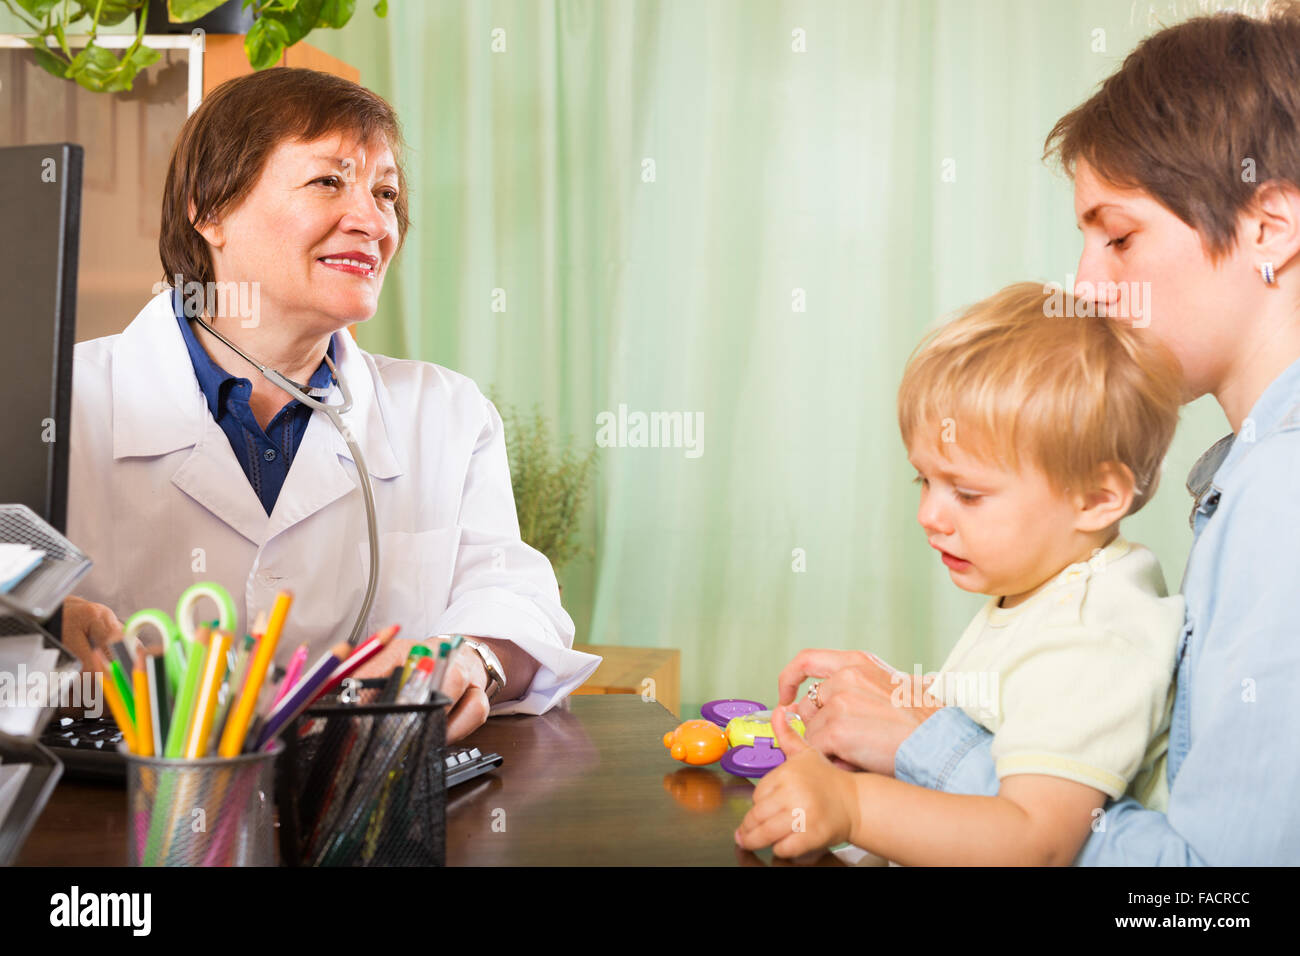 Mother with toddler talking with smiling female pediatrician doctor at clinic - Stock Image